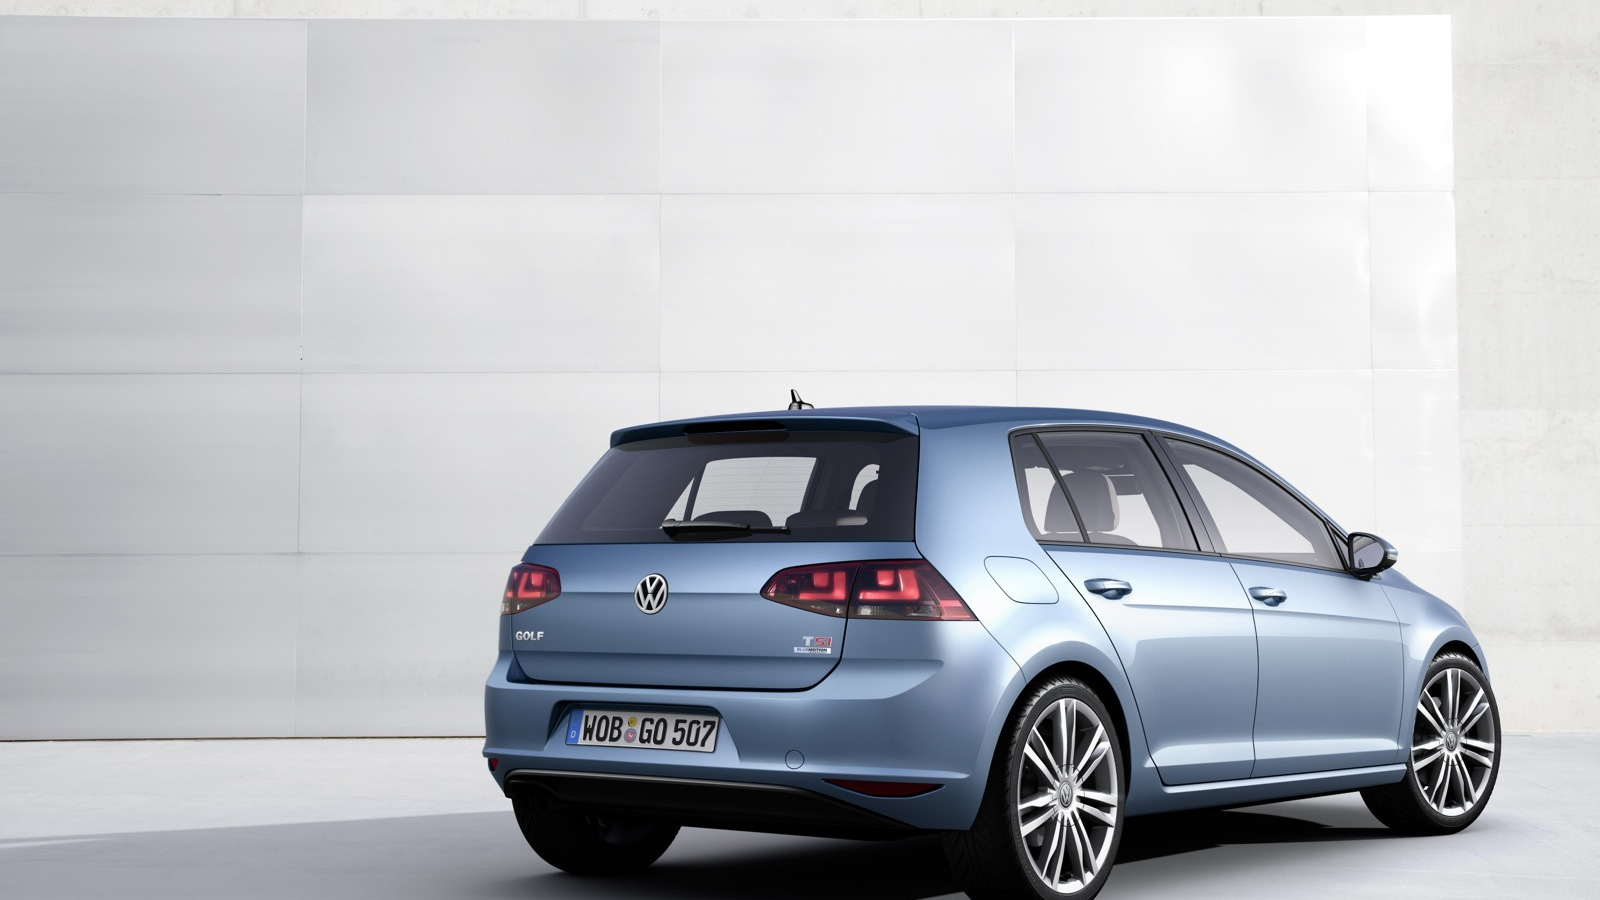 2014 Volkswagen Golf (European spec)